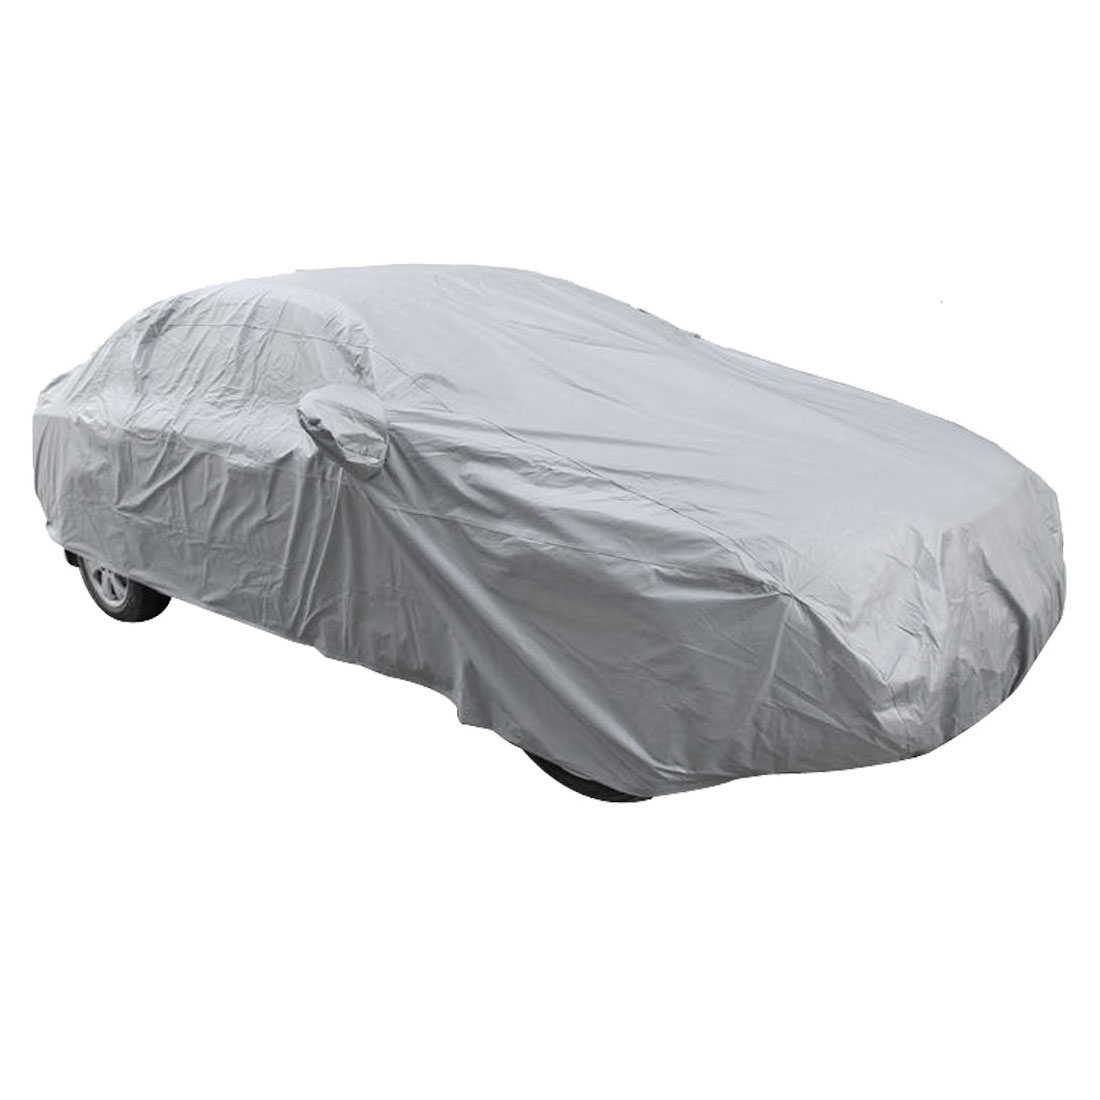 Non-woven Anti-dust Sun Rain Resistant Car Cover Protector for Hyundai Tucson